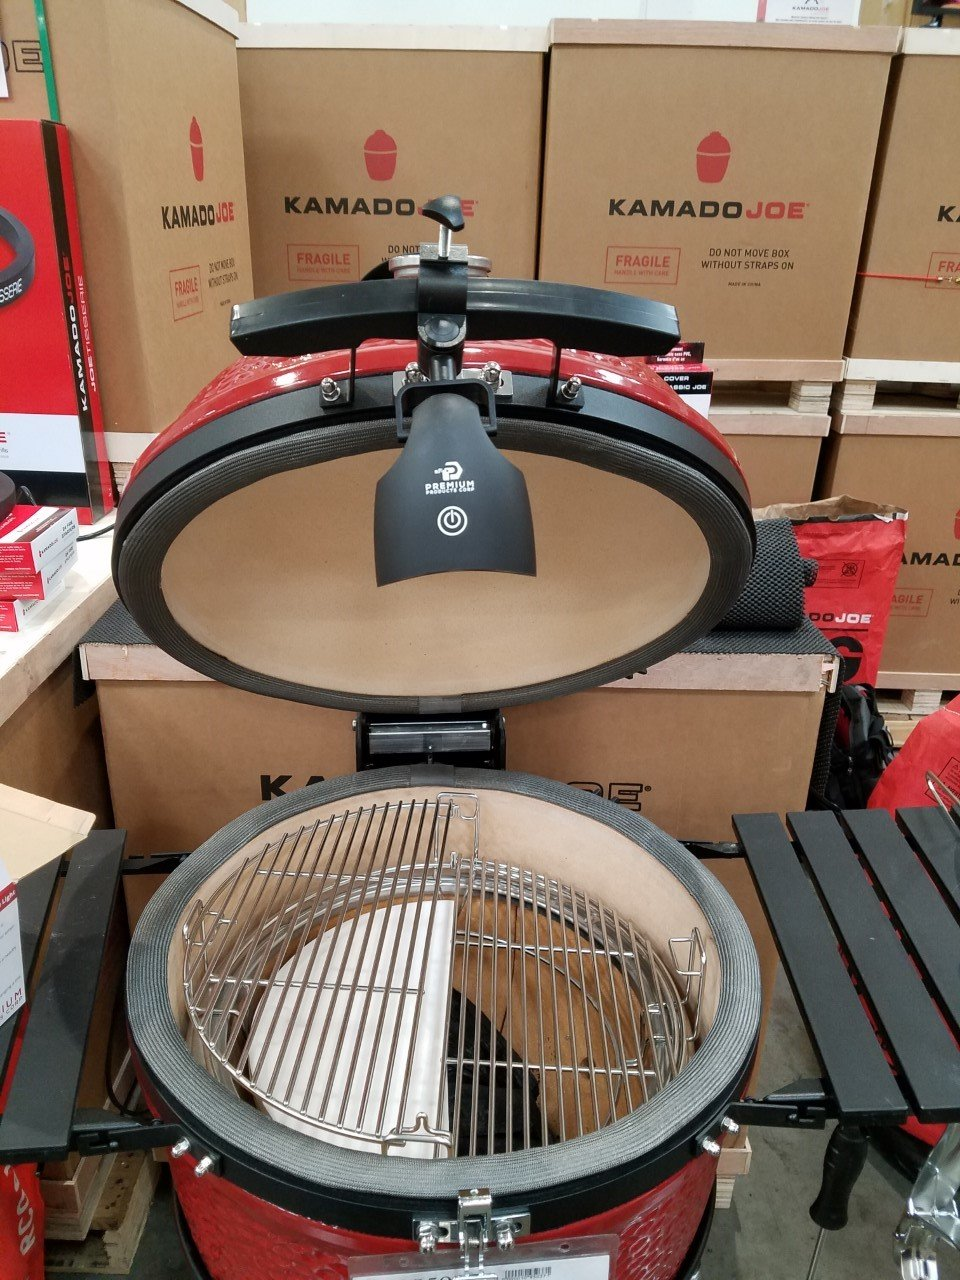 Kamado Joe Barbecue Grill Light (NOW WATERPROOF !) Solid Metal C-Clasp For Big Green Egg & Kamado Joe Grills & Smokers -Bright LED - For Grilling & Activities -NEW DESIGN 2 Year Warranty